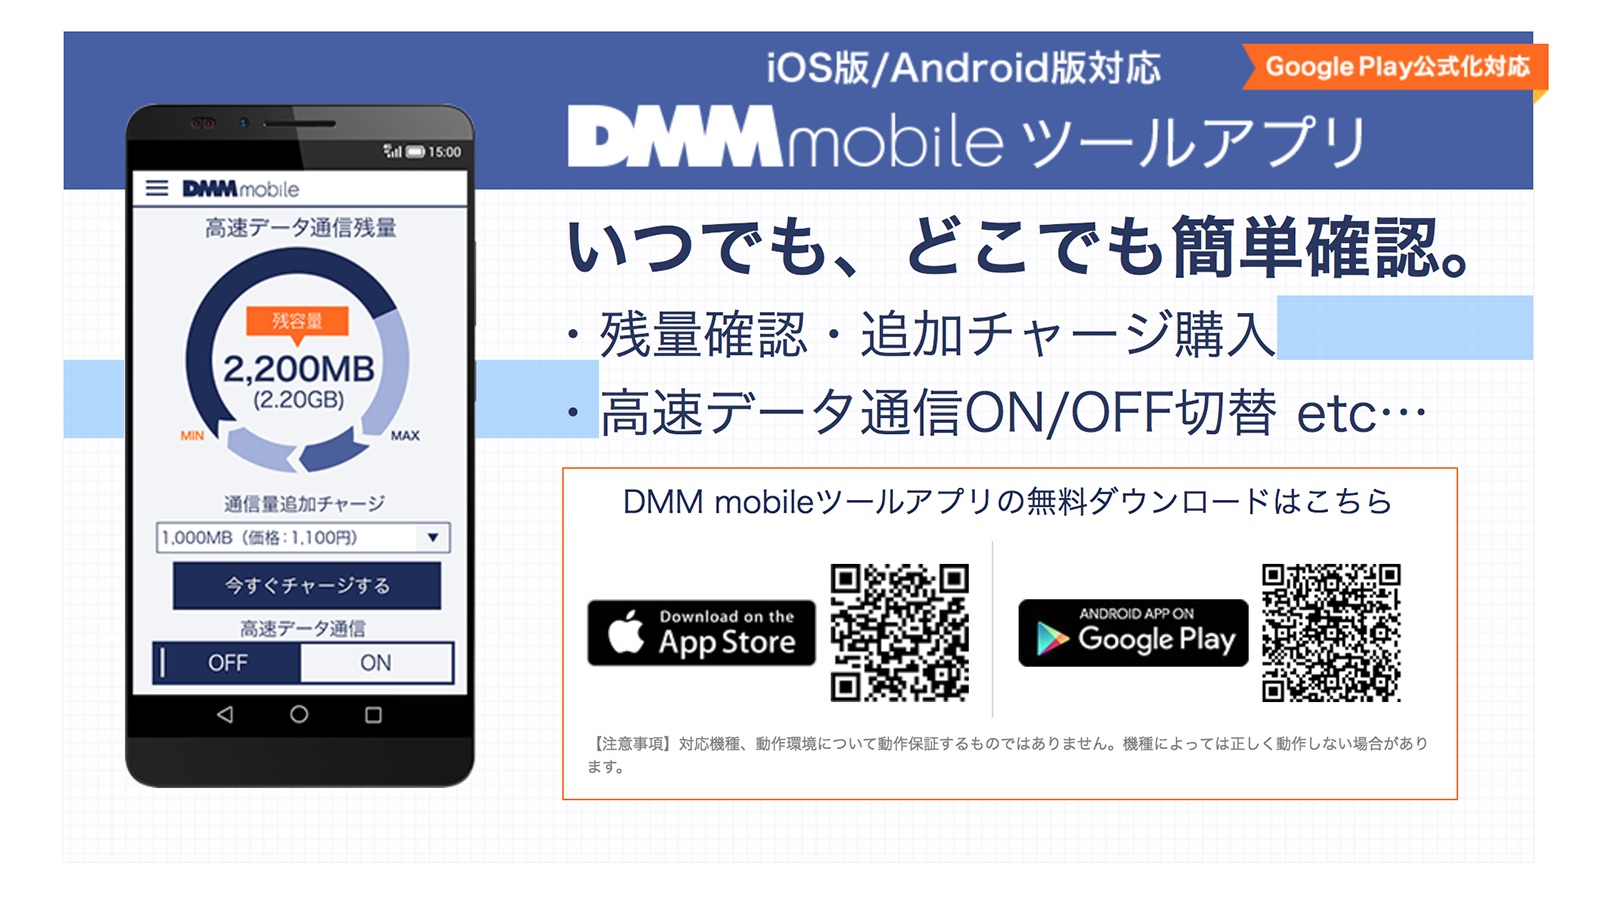 DMM mobile アプリ